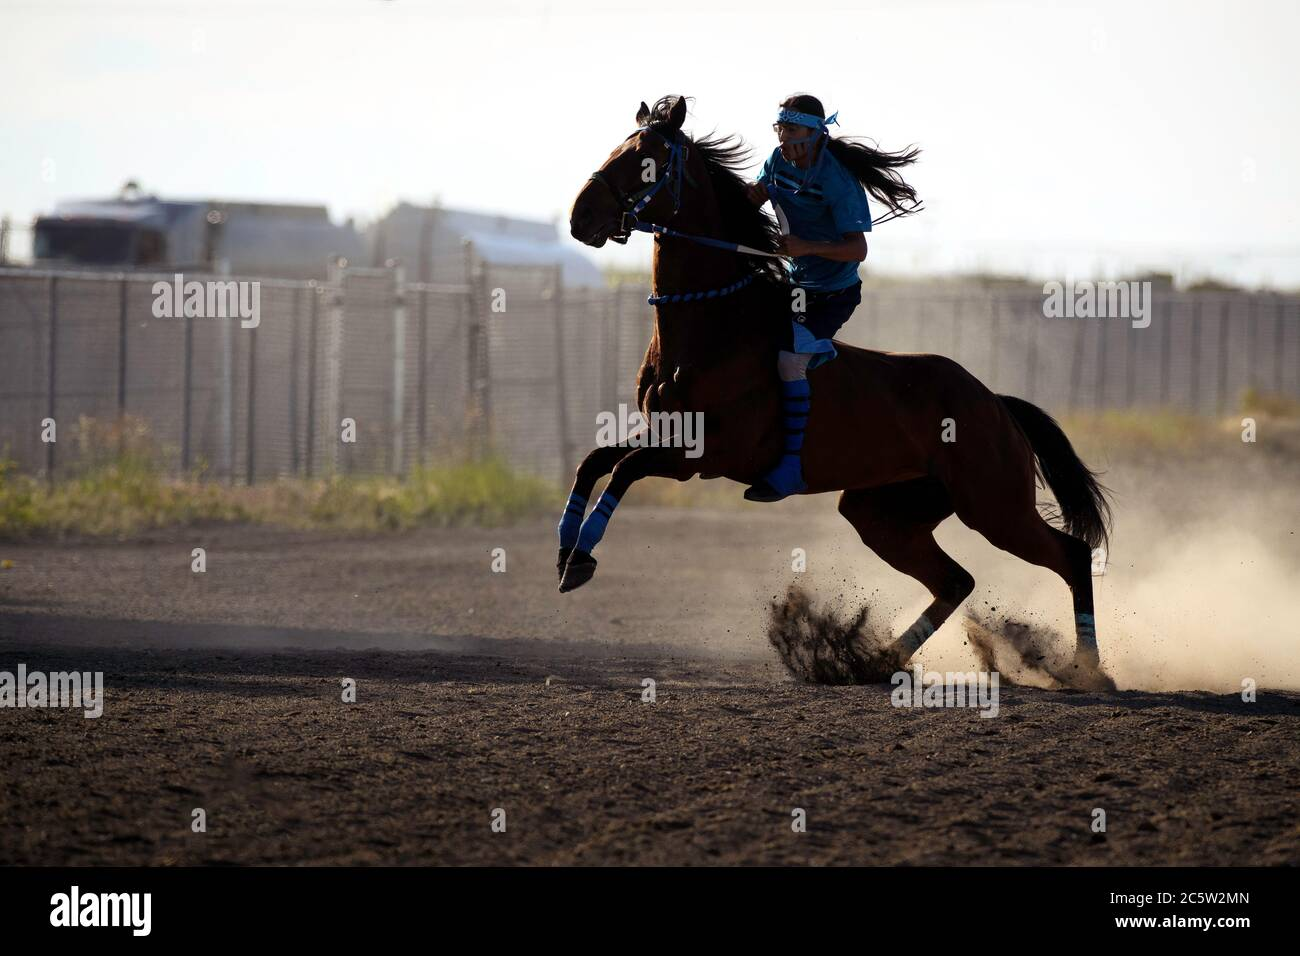 blackfoot-first-nations-indian-relay-horse-race-held-in-strathmore-alberta-canada-2C5W2MN.jpg